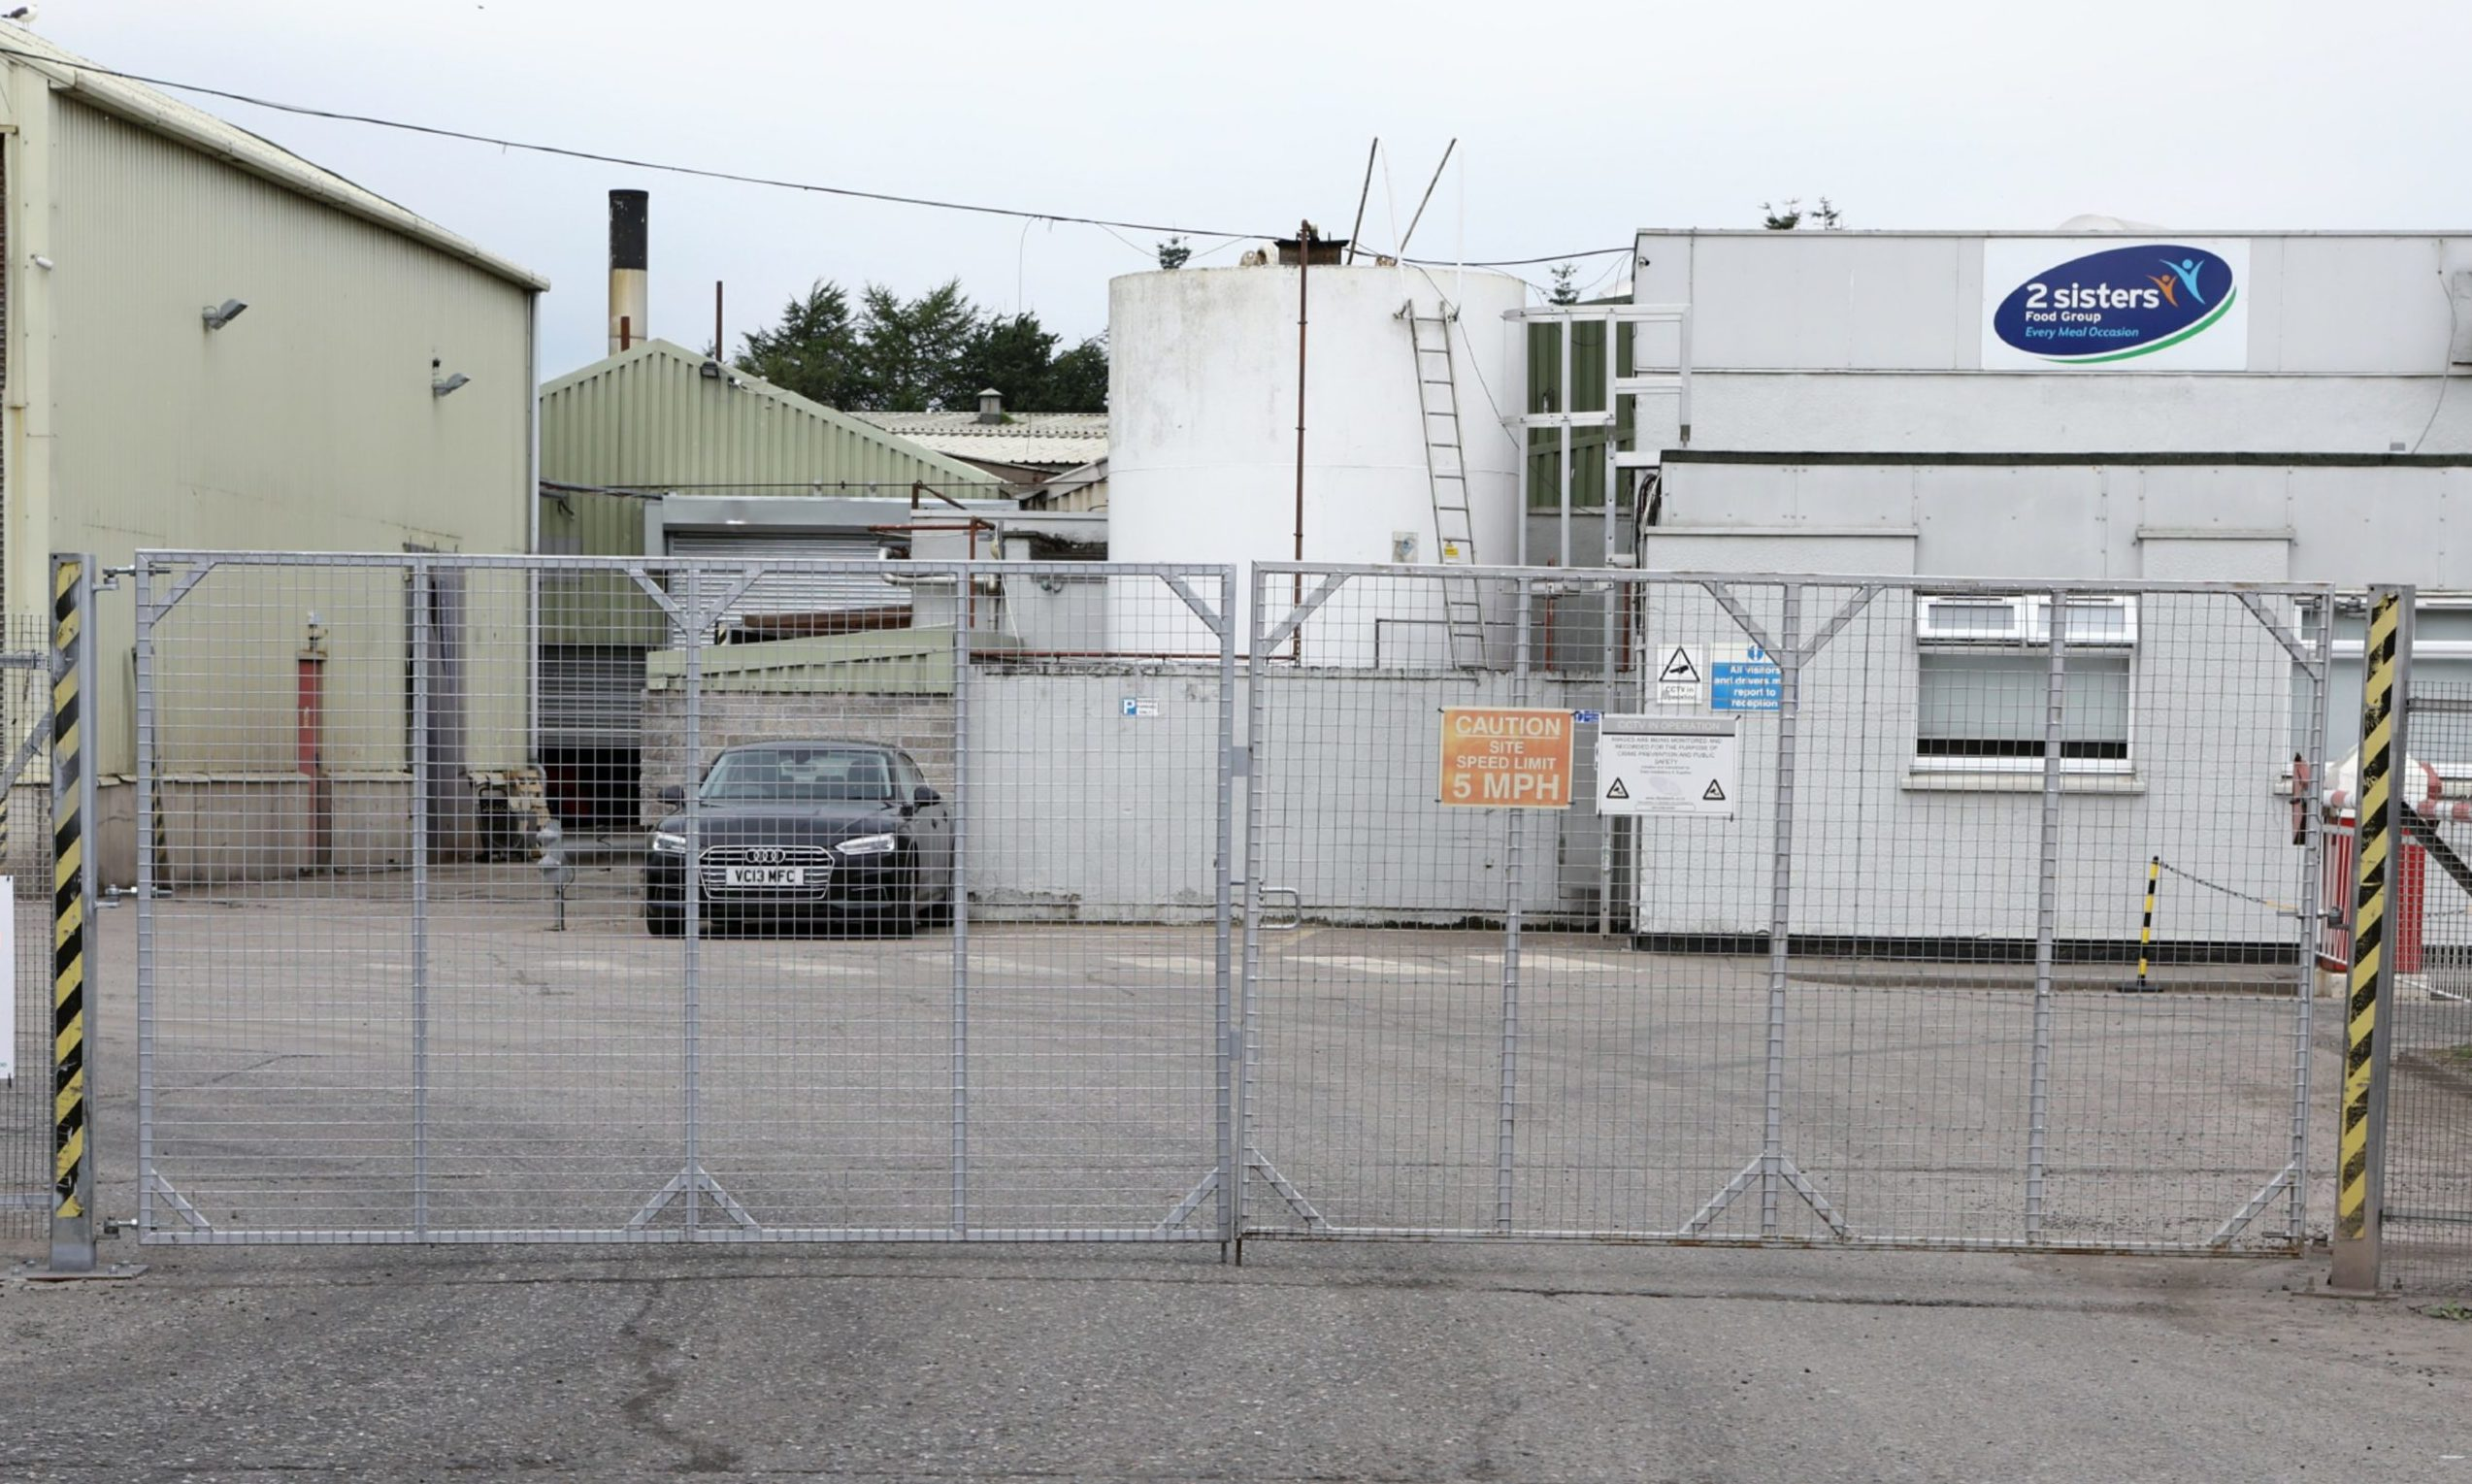 The 2 Sisters food plant in Coupar Angus.